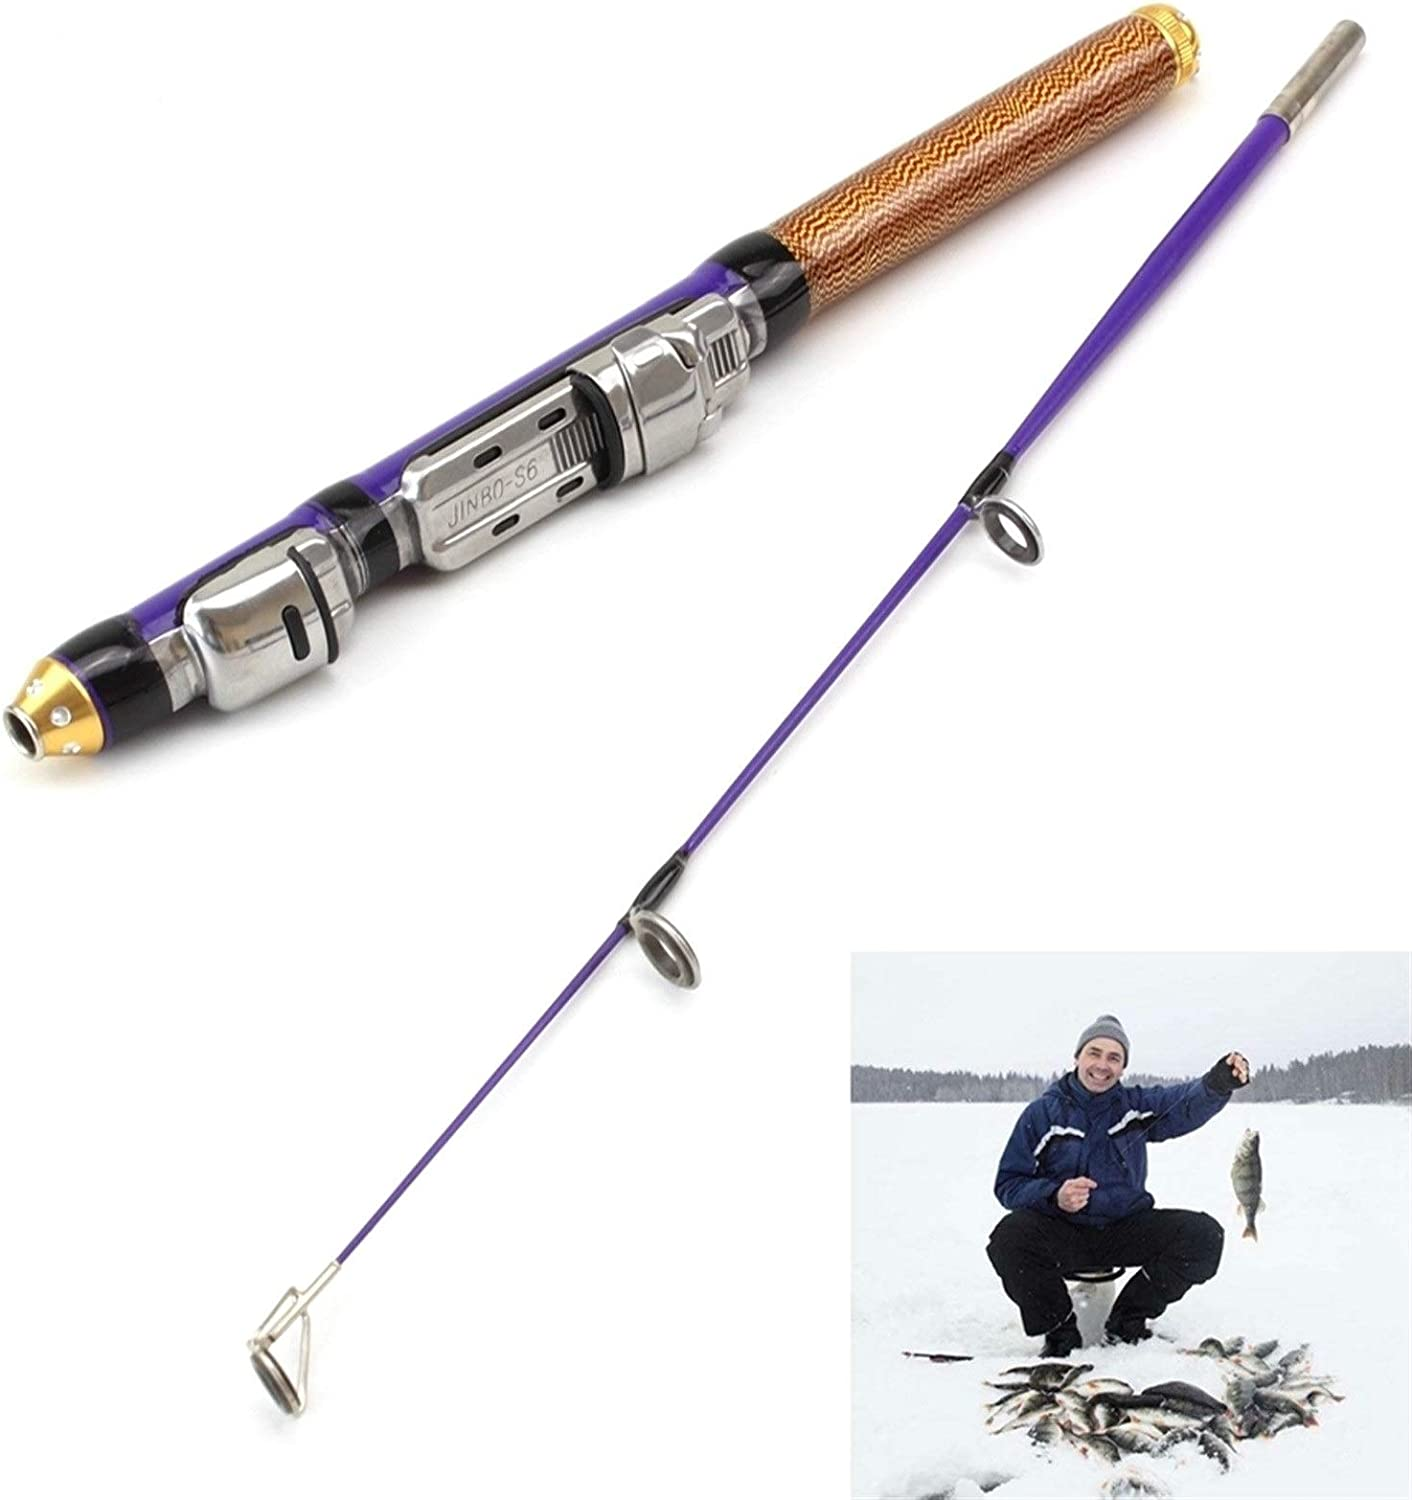 H A New unisex Winter Fishing ice 2 50cm Rod 61g Cross Section Shipping included